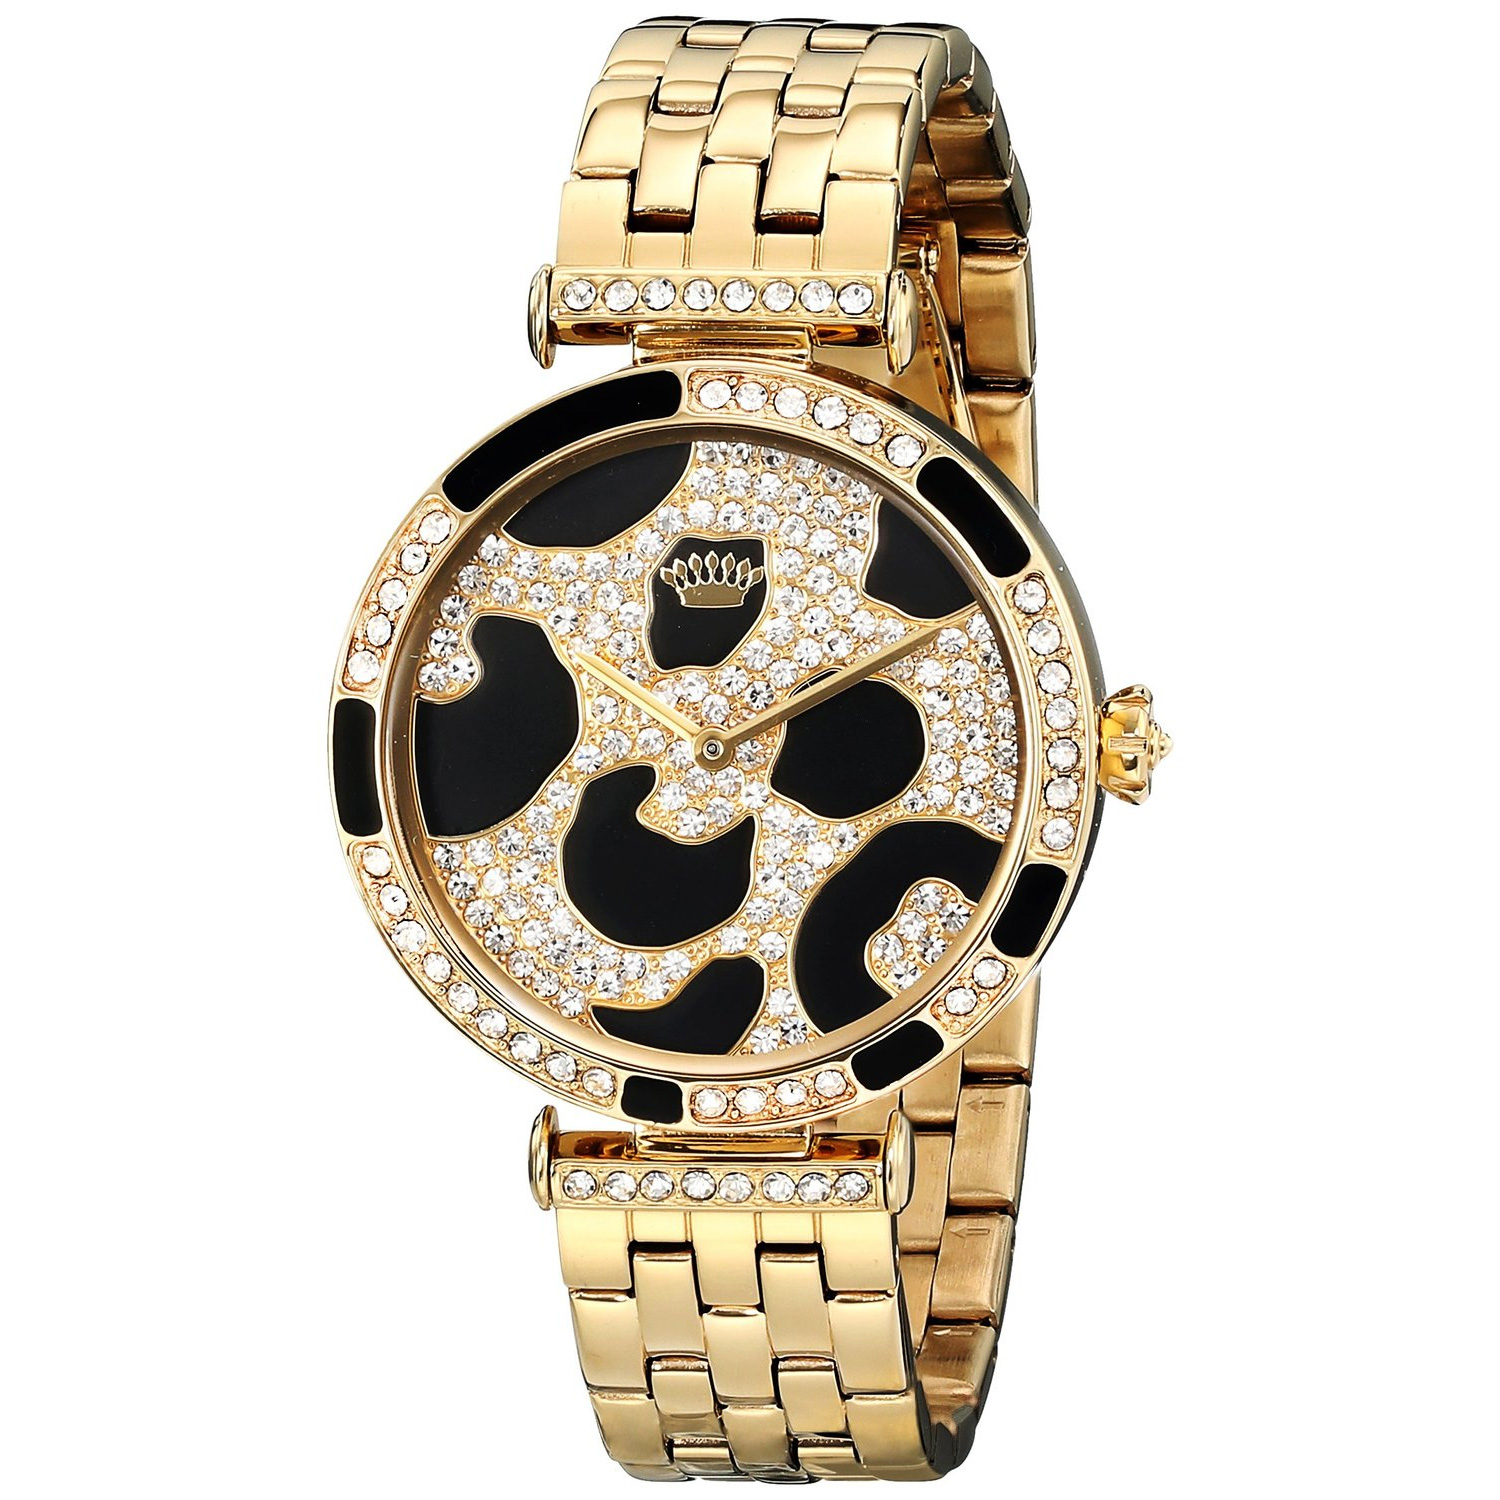 Orologio donna Juicy couture 1901169